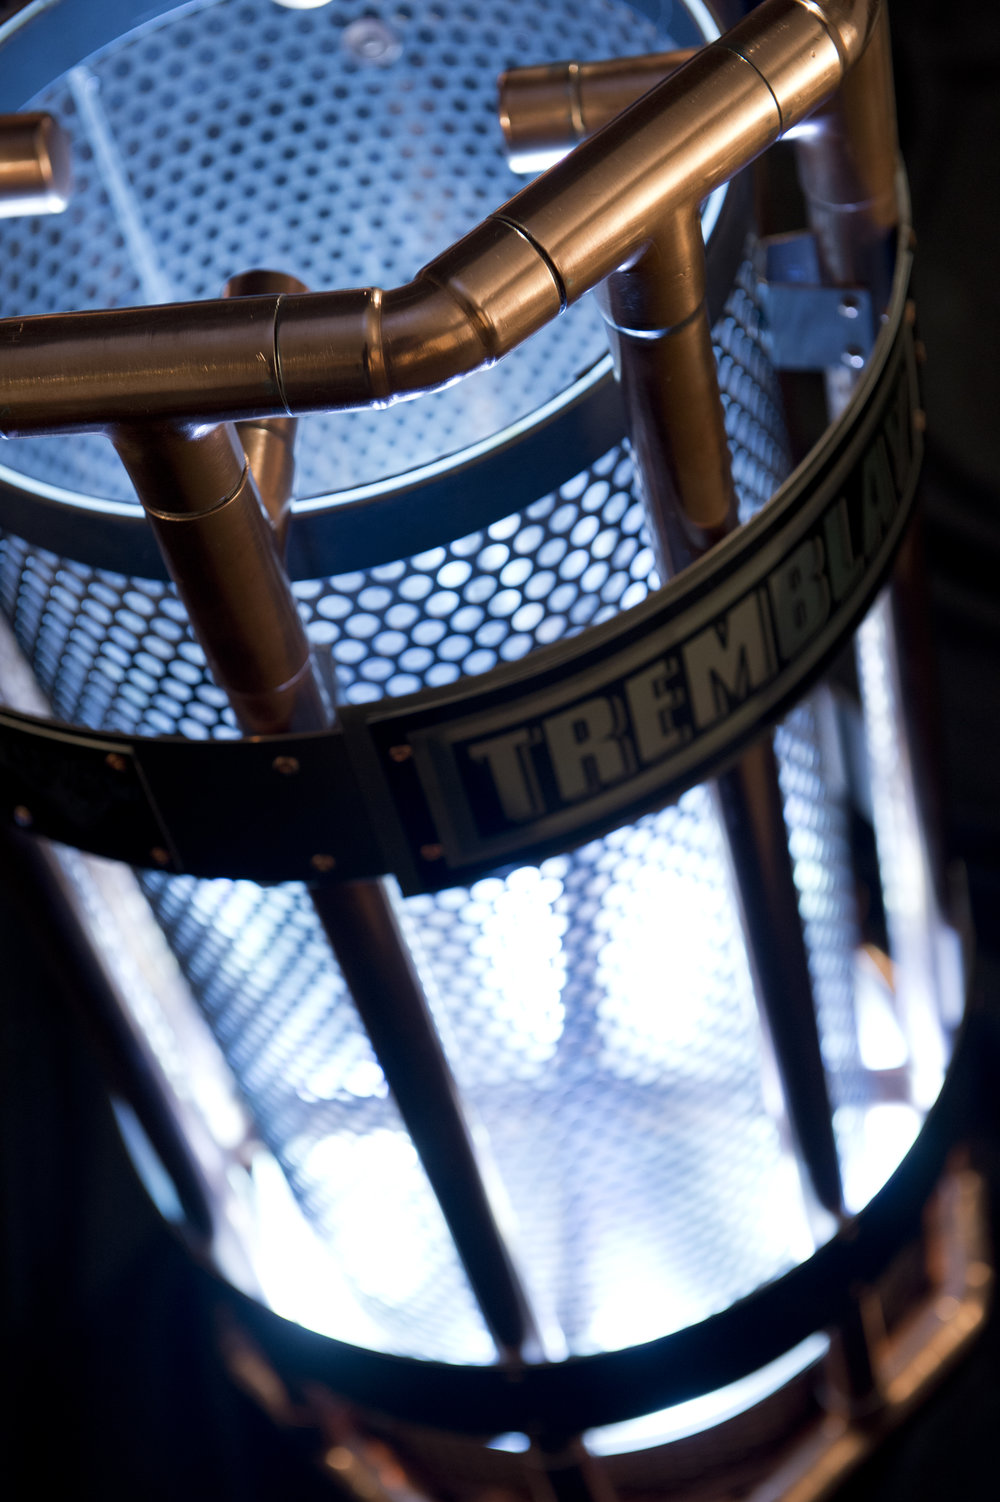 The Tremblay trophy, a in-house design and fabrication with the collaboration of Totem Urbain (photo Bruno Petrozza)